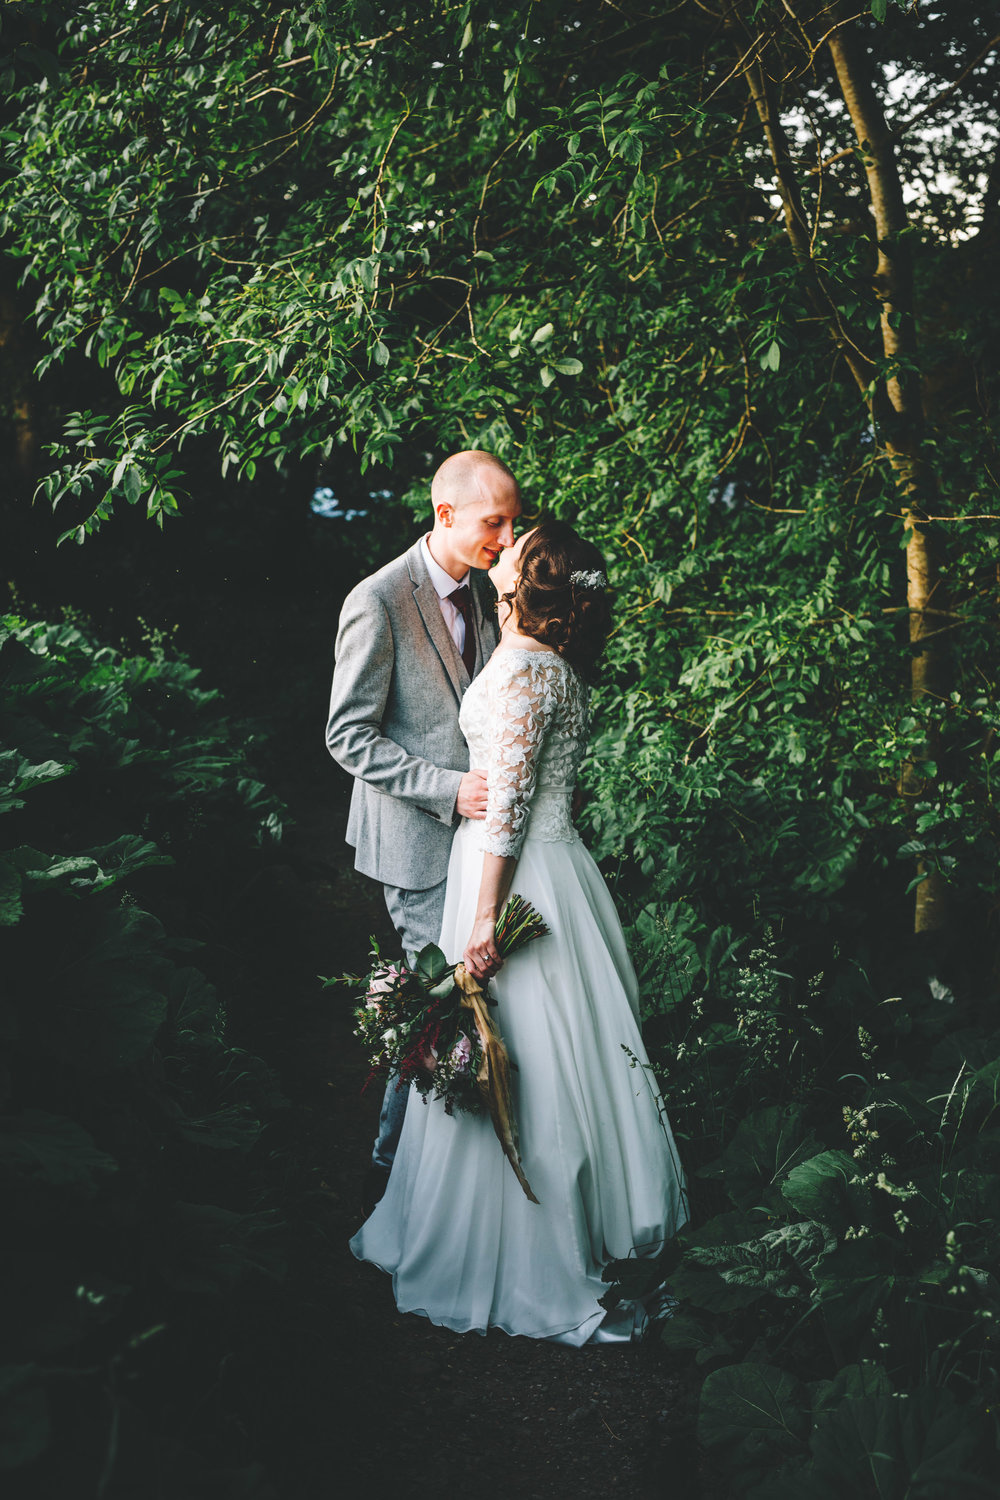 The bride and groom kissing under the trees, Creative wedding photographer, rustic themed wedding.